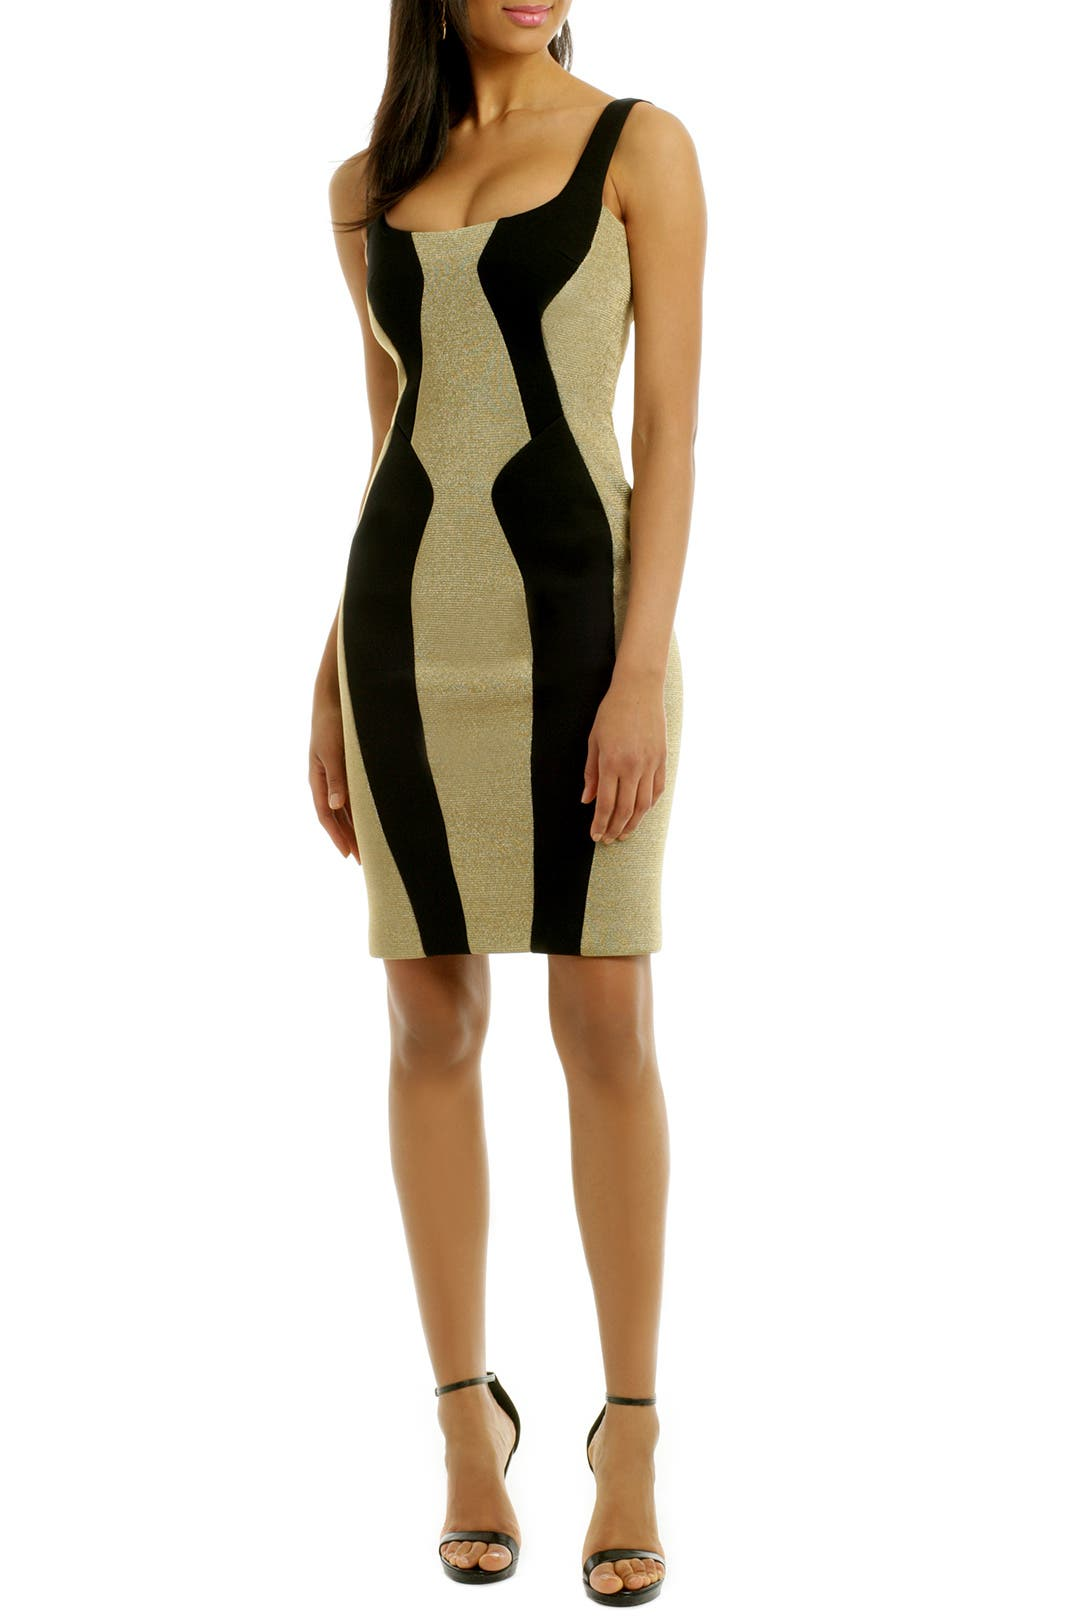 Metal Contour Cut Away Dress by Josh Goot